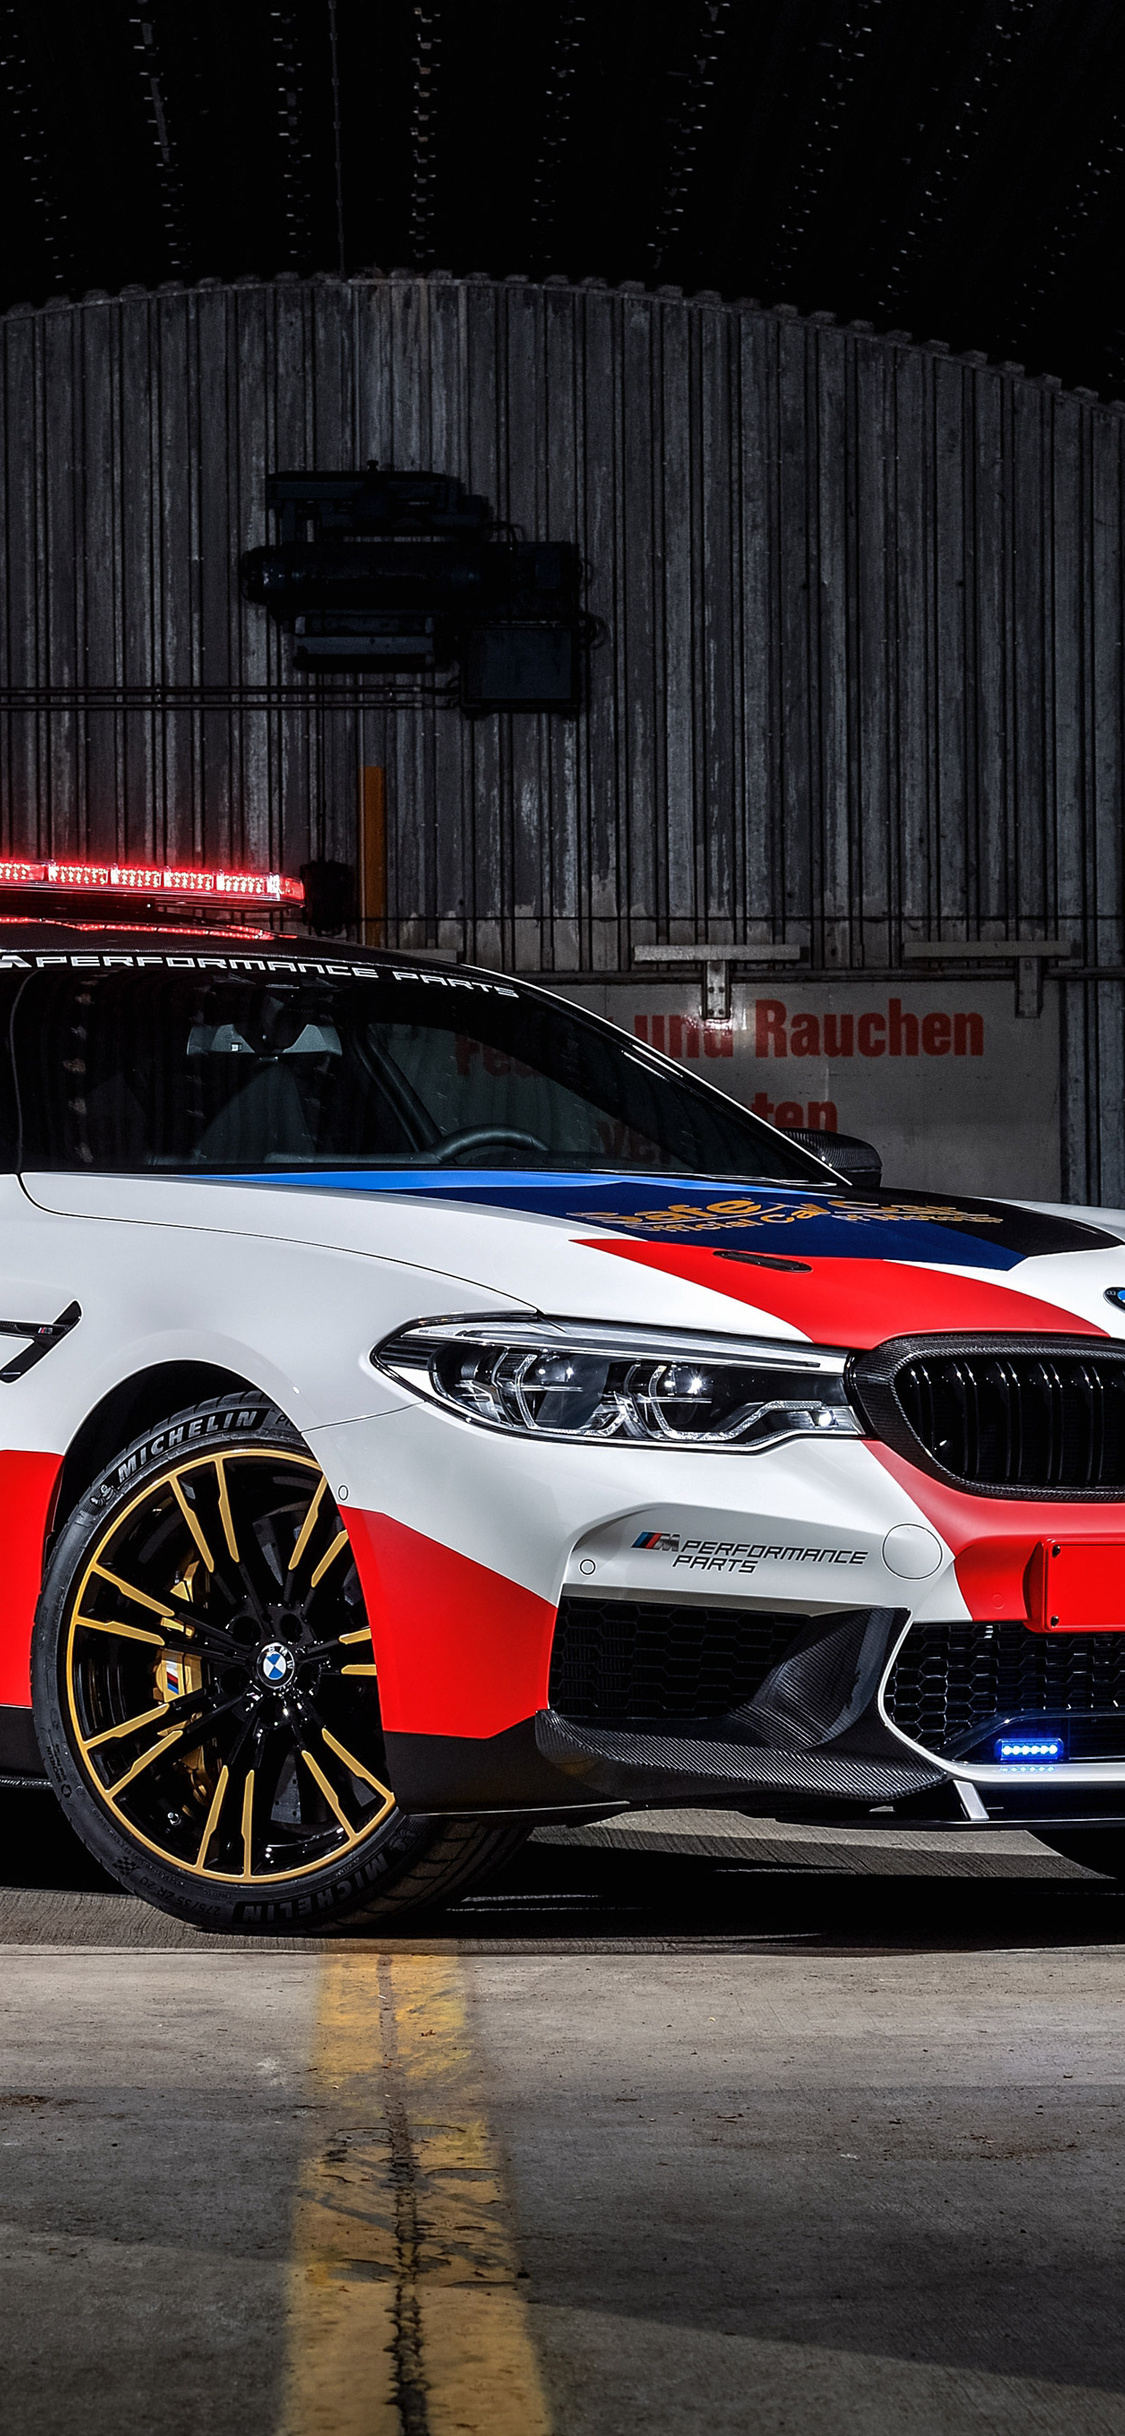 1125x2436 Bmw M5 Motogp Safety Car Iphone Xs Iphone 10 Iphone X Hd